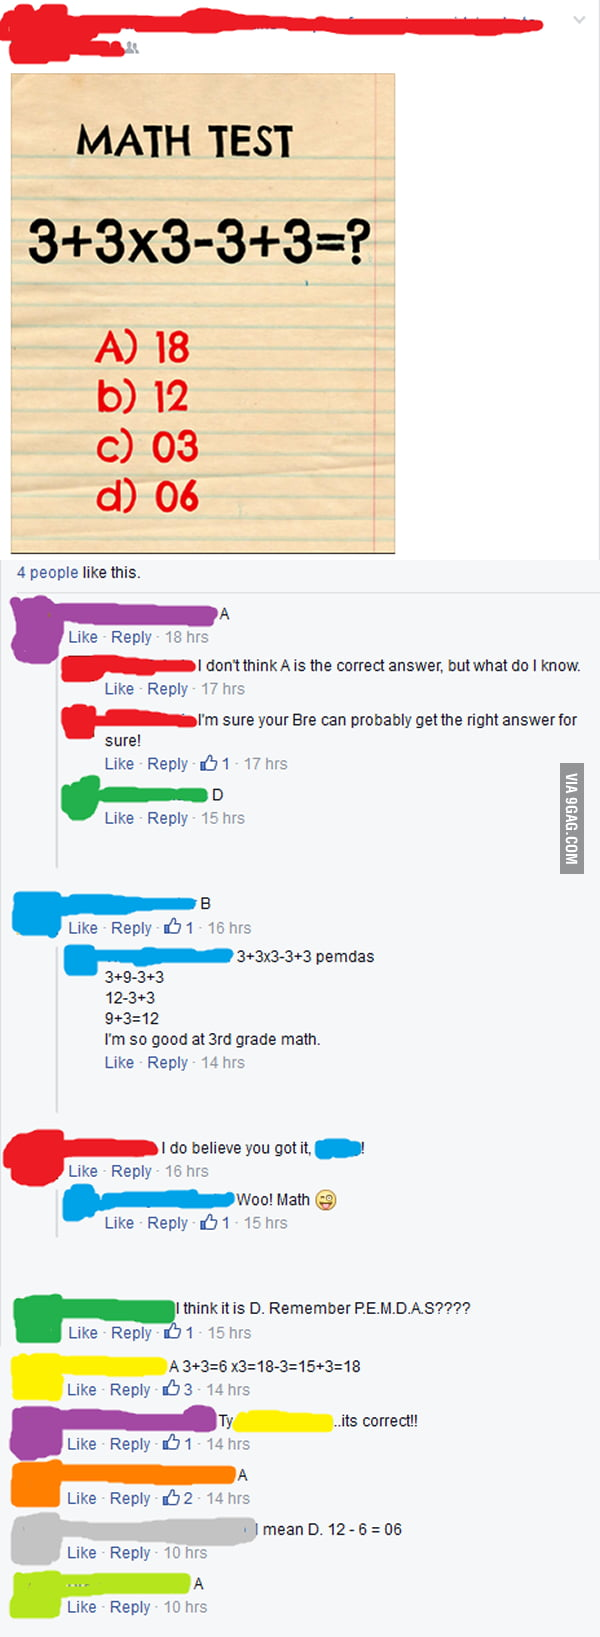 Everyone forgets how to do math.